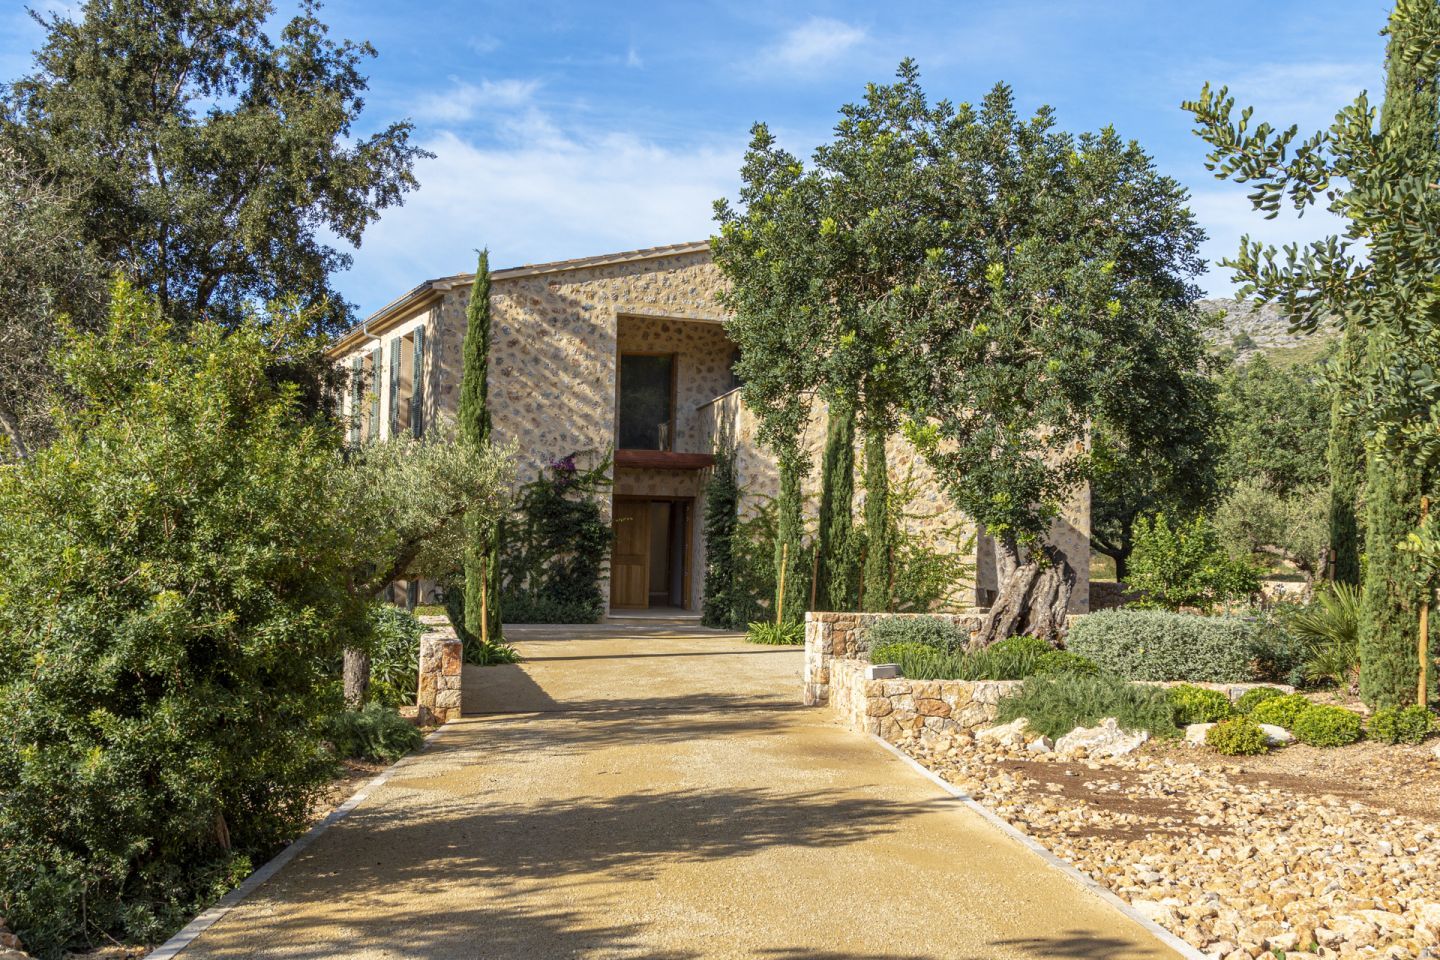 5 Bed Countryside House for sale in POLLENSA 3